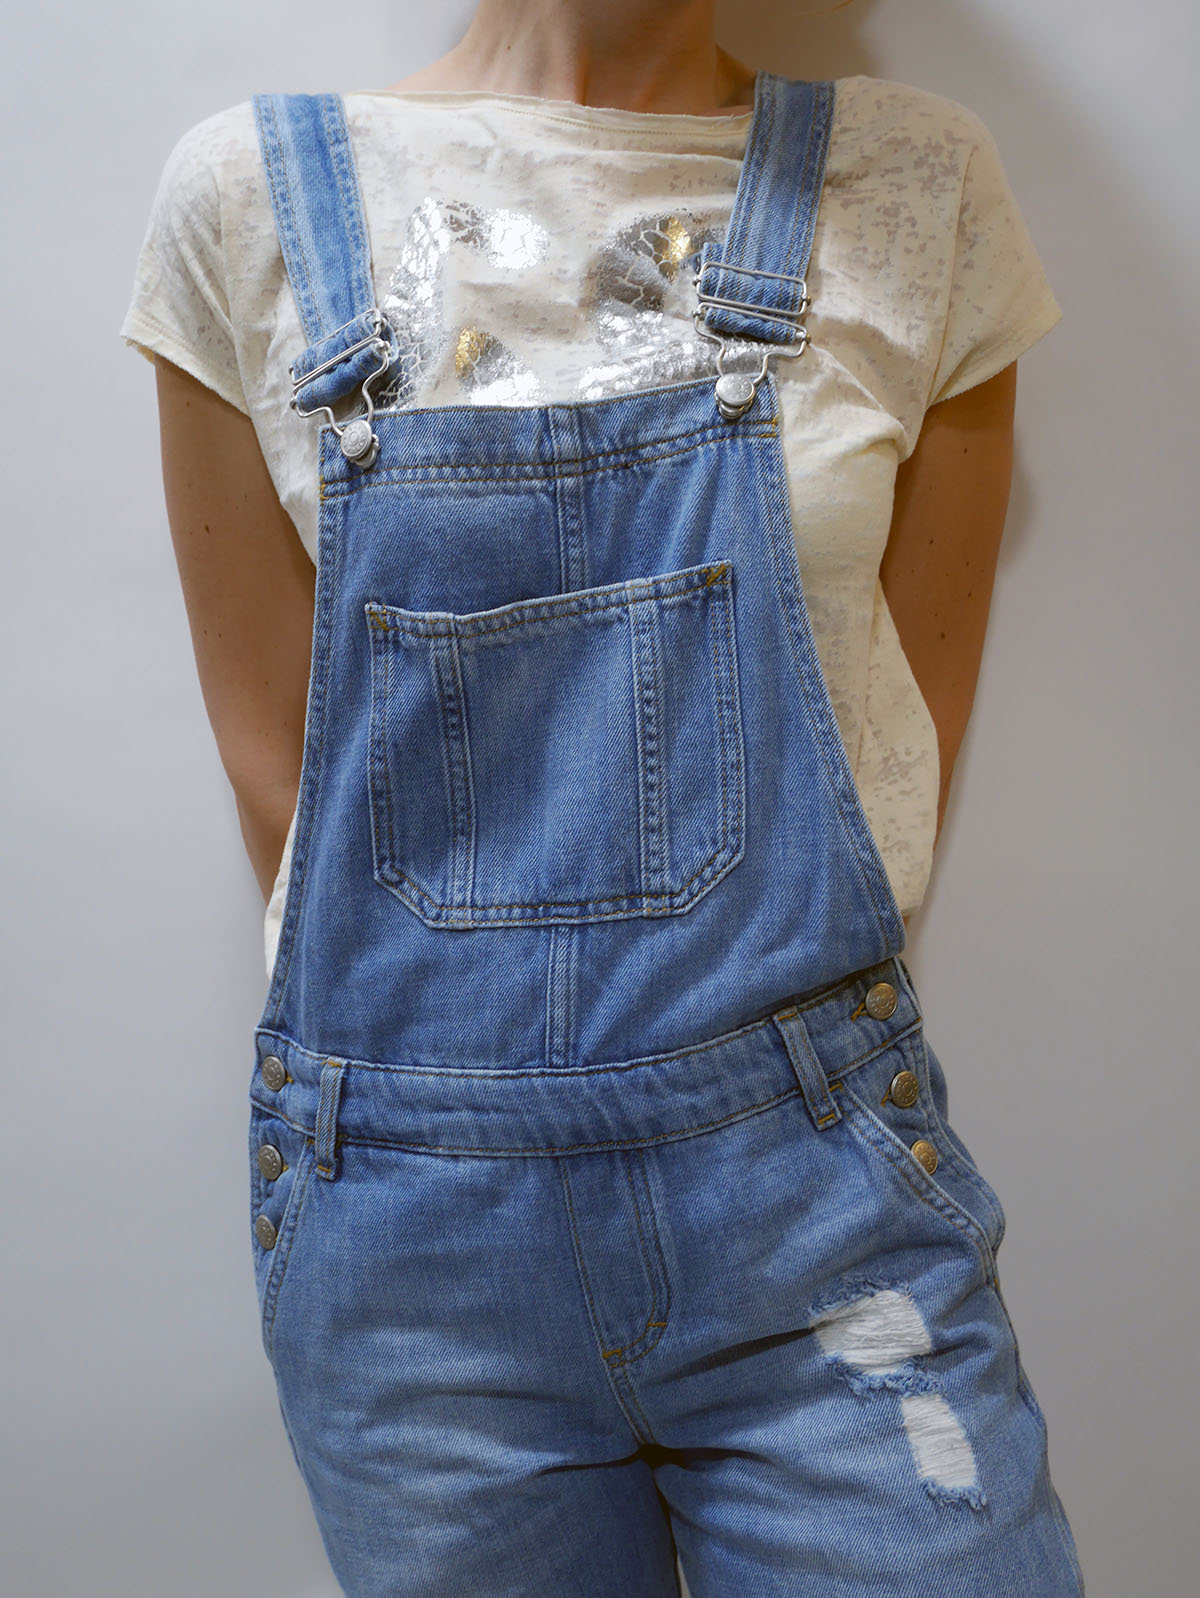 4DQ8580Z7 DUNGAREE 2